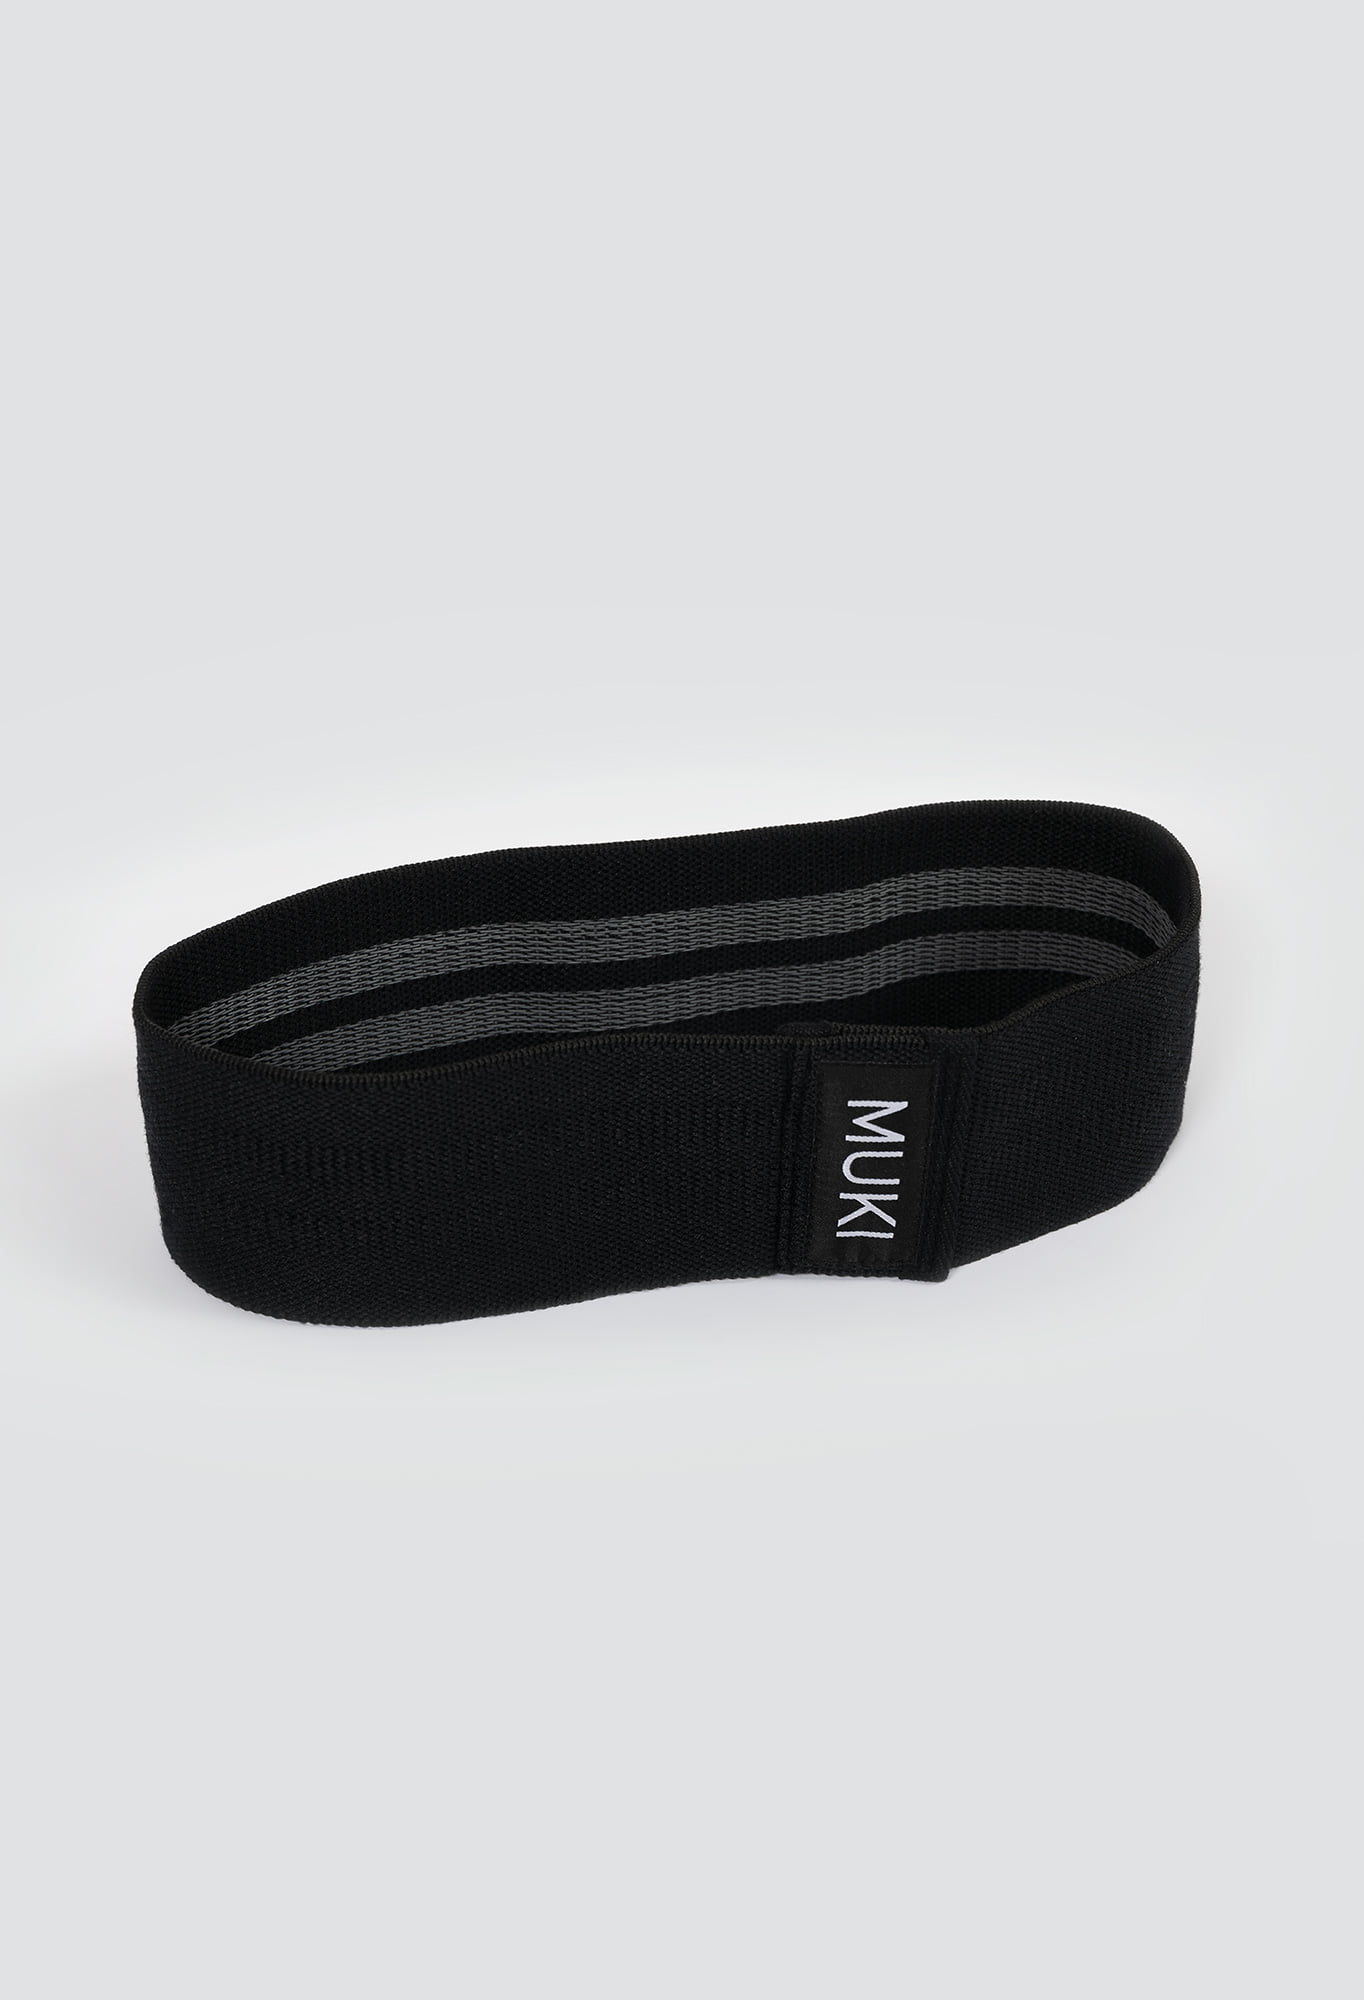 black fabric resistance band in low strength by Muki